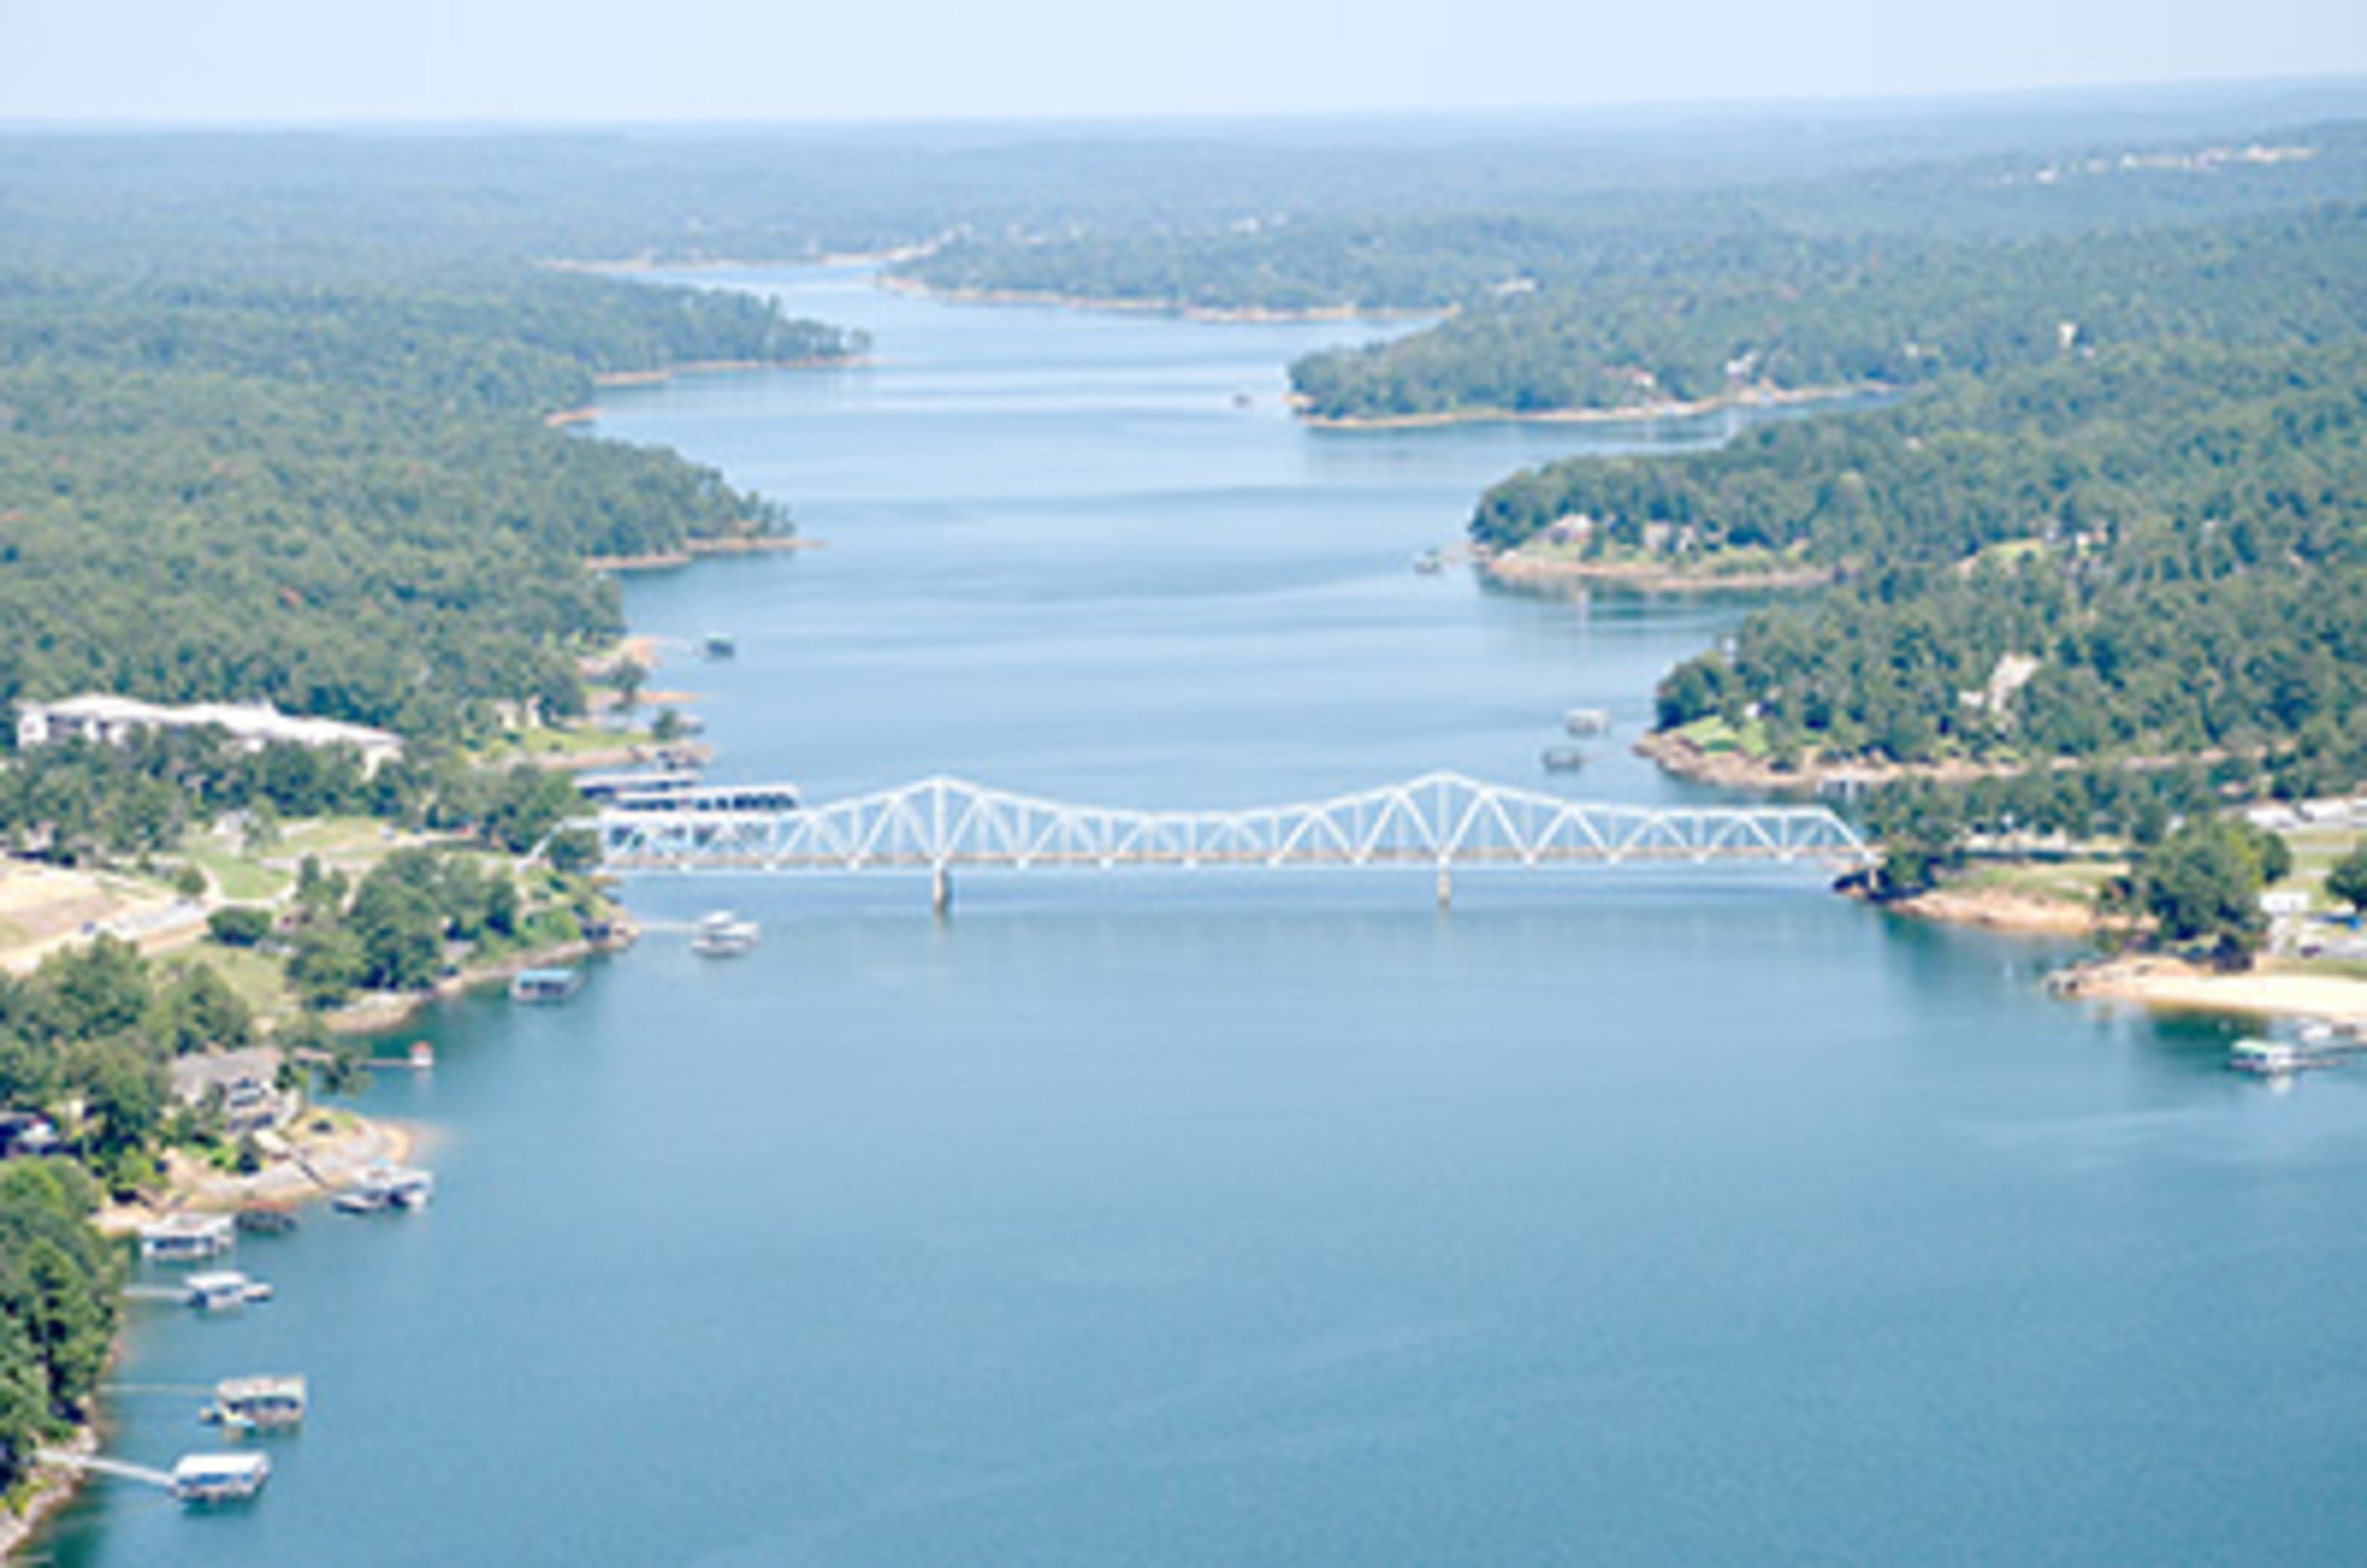 Lewis Smith Lake, as seen in this aerial photo from 2012, is one of the cleanest lakes in the state according to Alabama Water Watch, a volunteer-led water quality monitoring program. File photo- Ron Harris